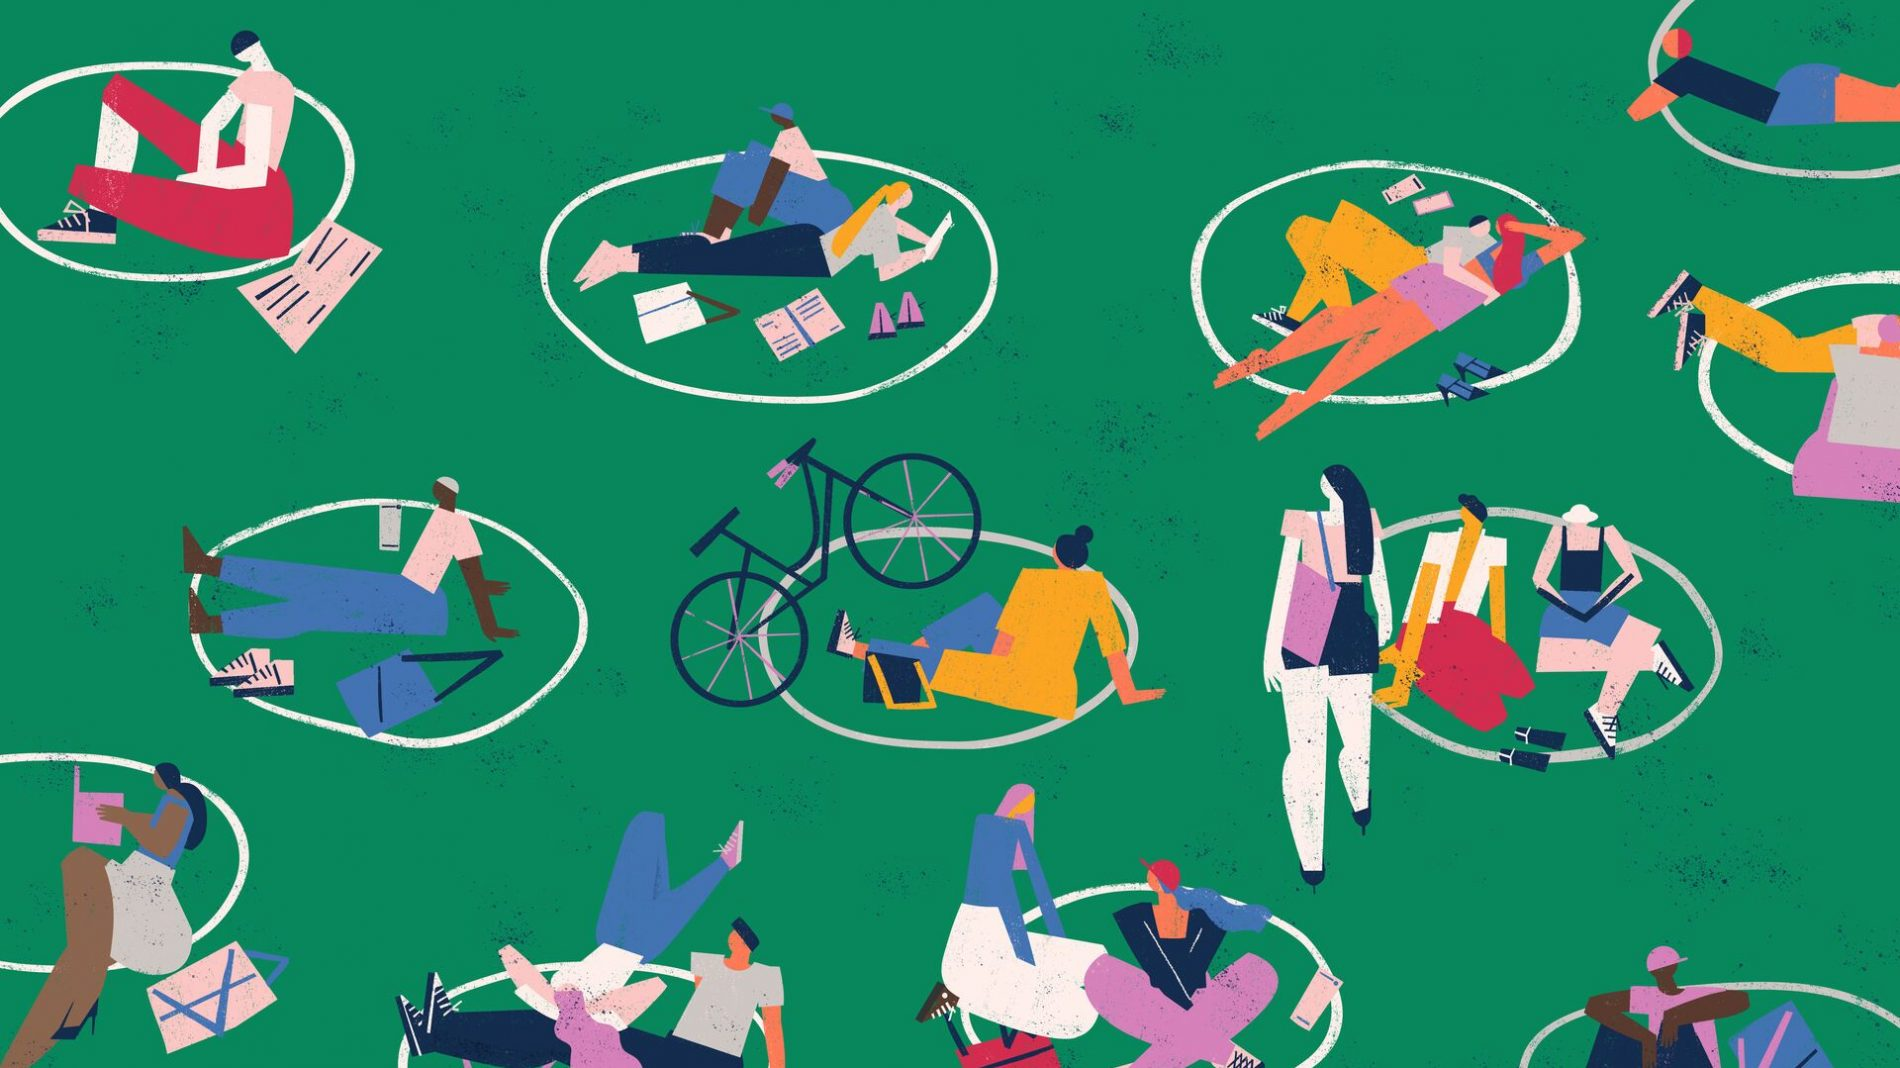 illustration of individuals and small groups of people sitting and lying on the grass following covid19 social distancing guidelines